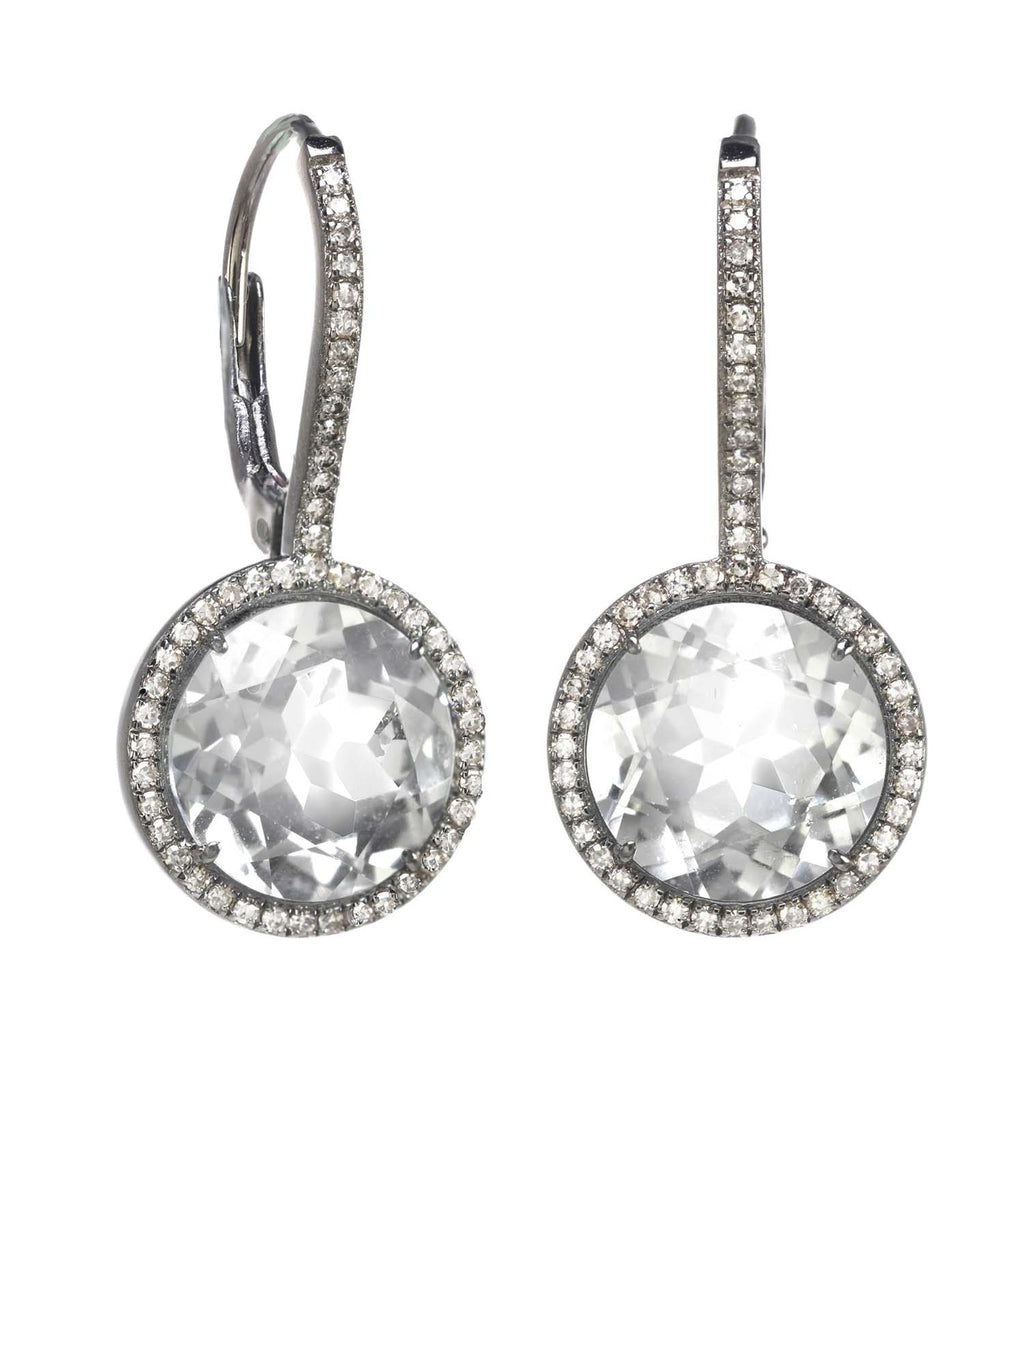 Margo Morrison White Topaz and Diamond Drop Earrings - Sterling Silver